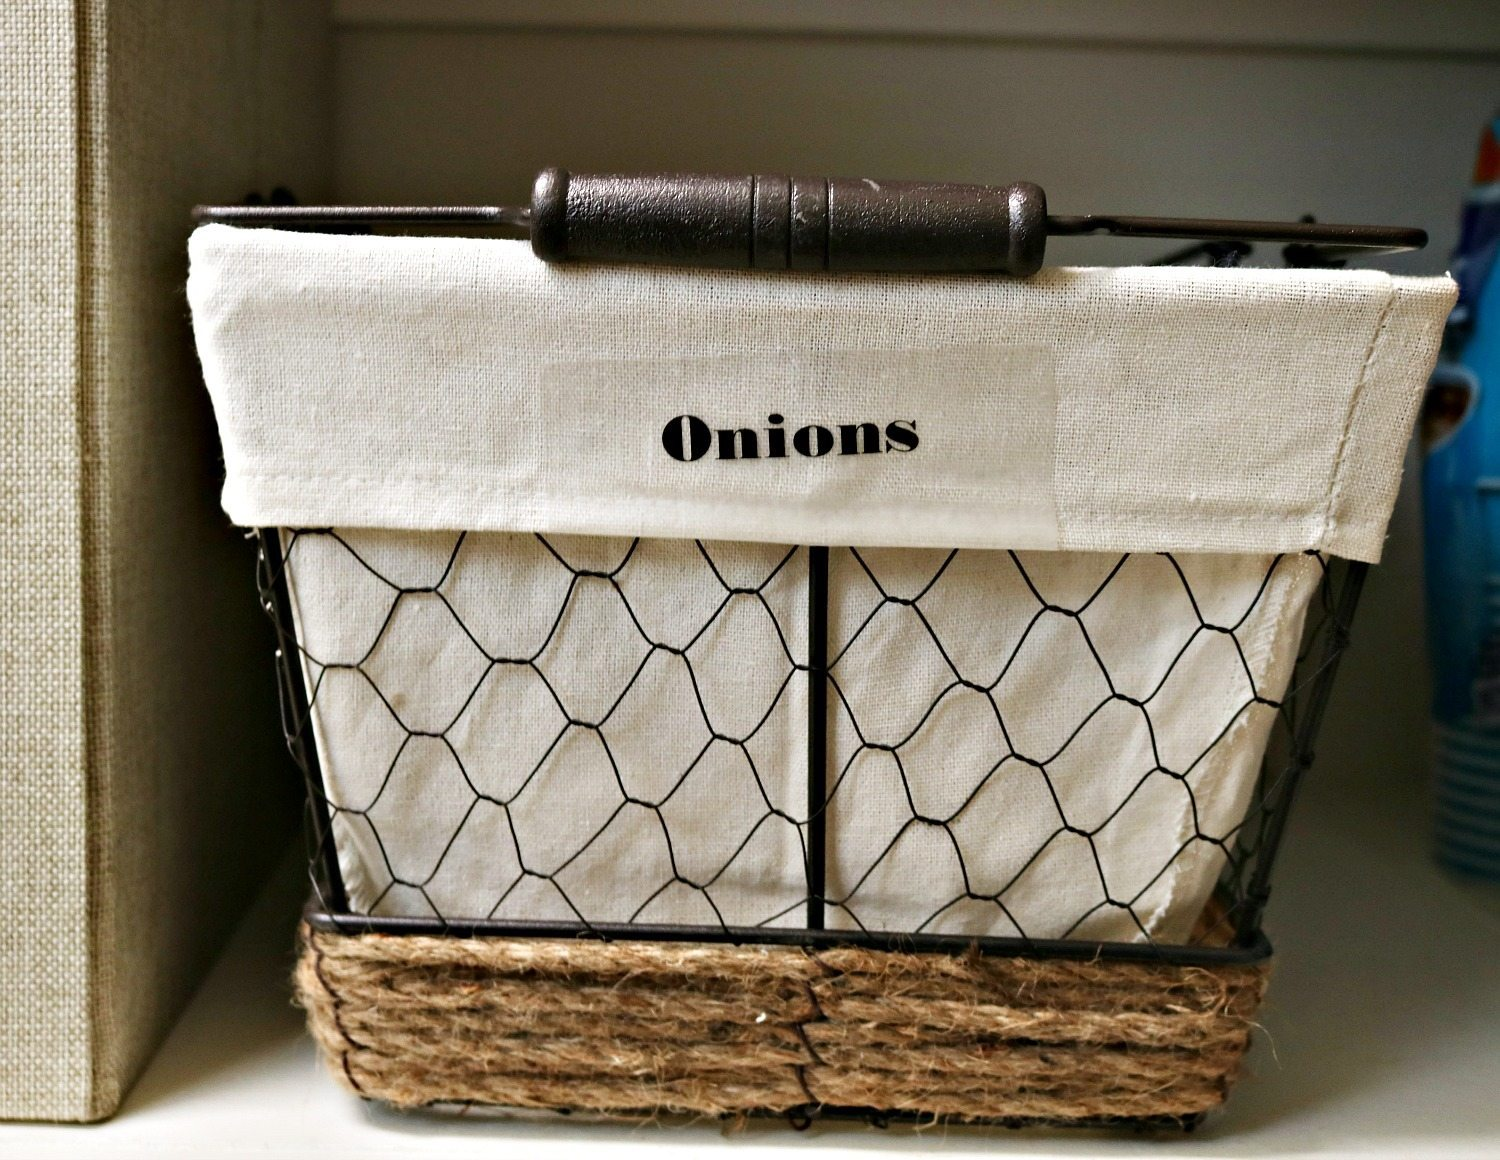 Separate baskets for potatoes and onions in the pantry